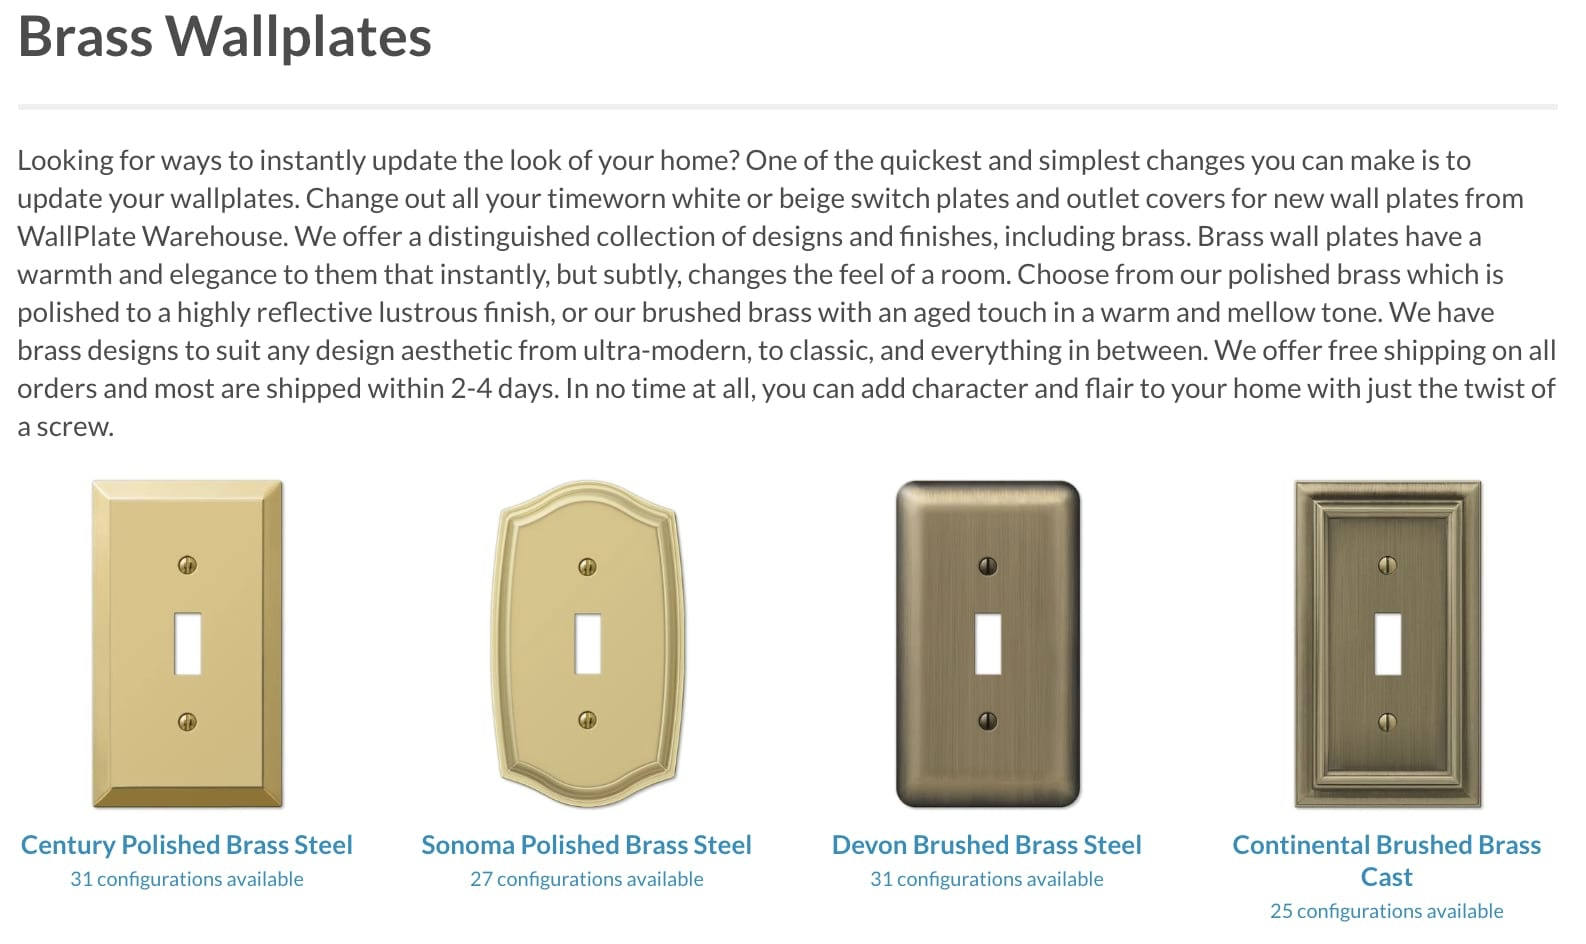 A screenshot of the Brass wallplate product page on Wallplate Warehouse